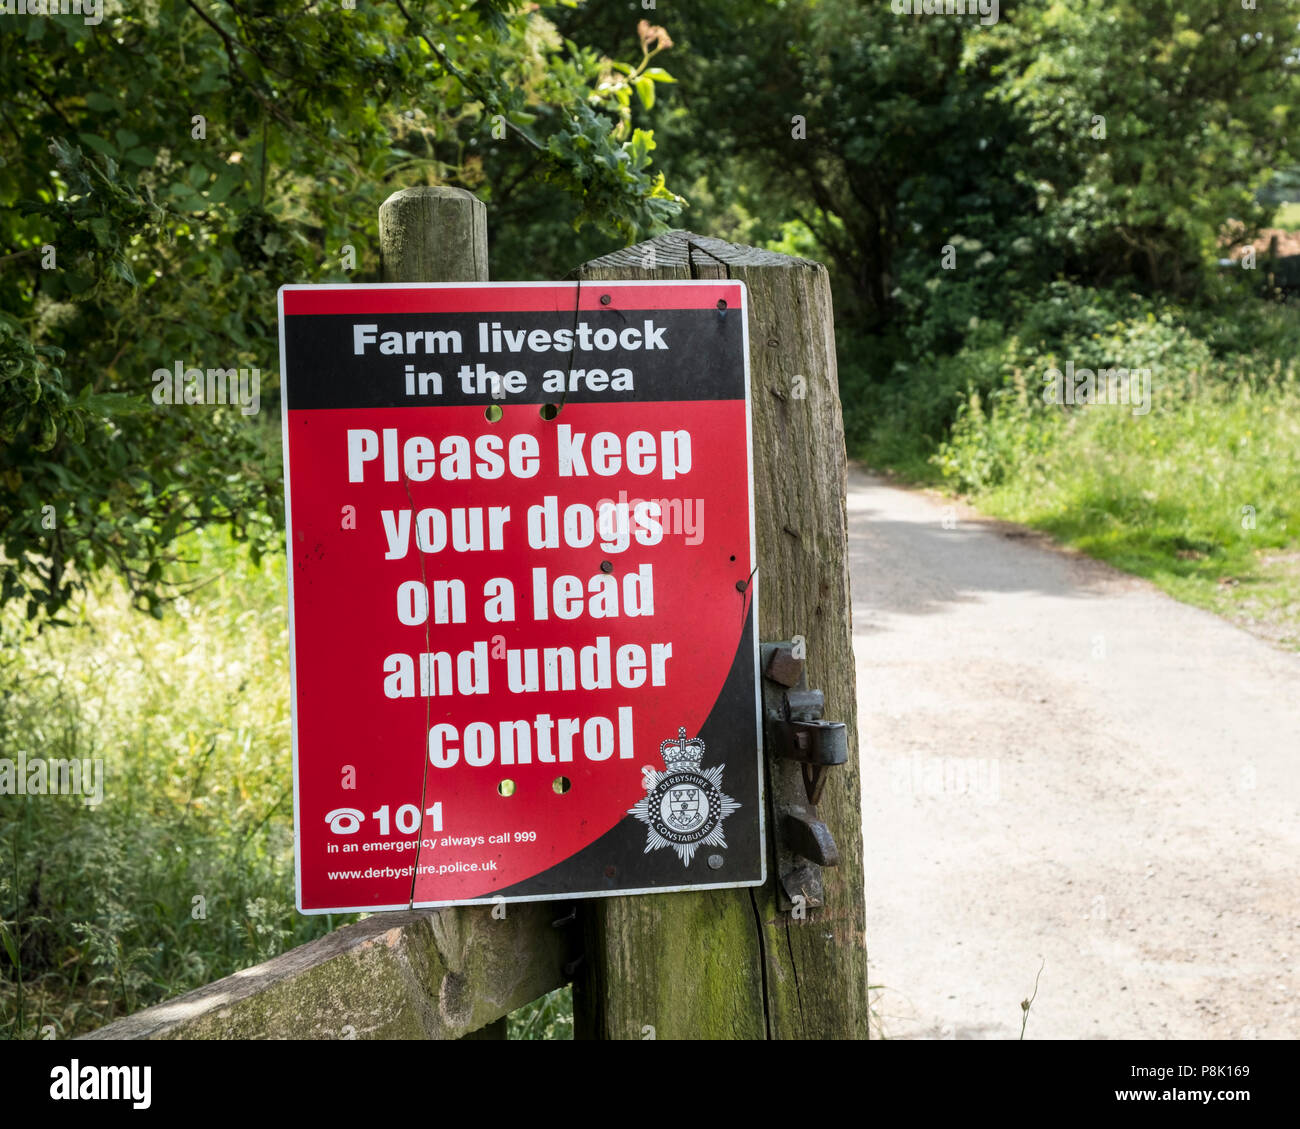 Farm livestock sign. Notice requesting people to 'Please keep your dogs on a lead and under control', Derbyshire, England, UK - Stock Image